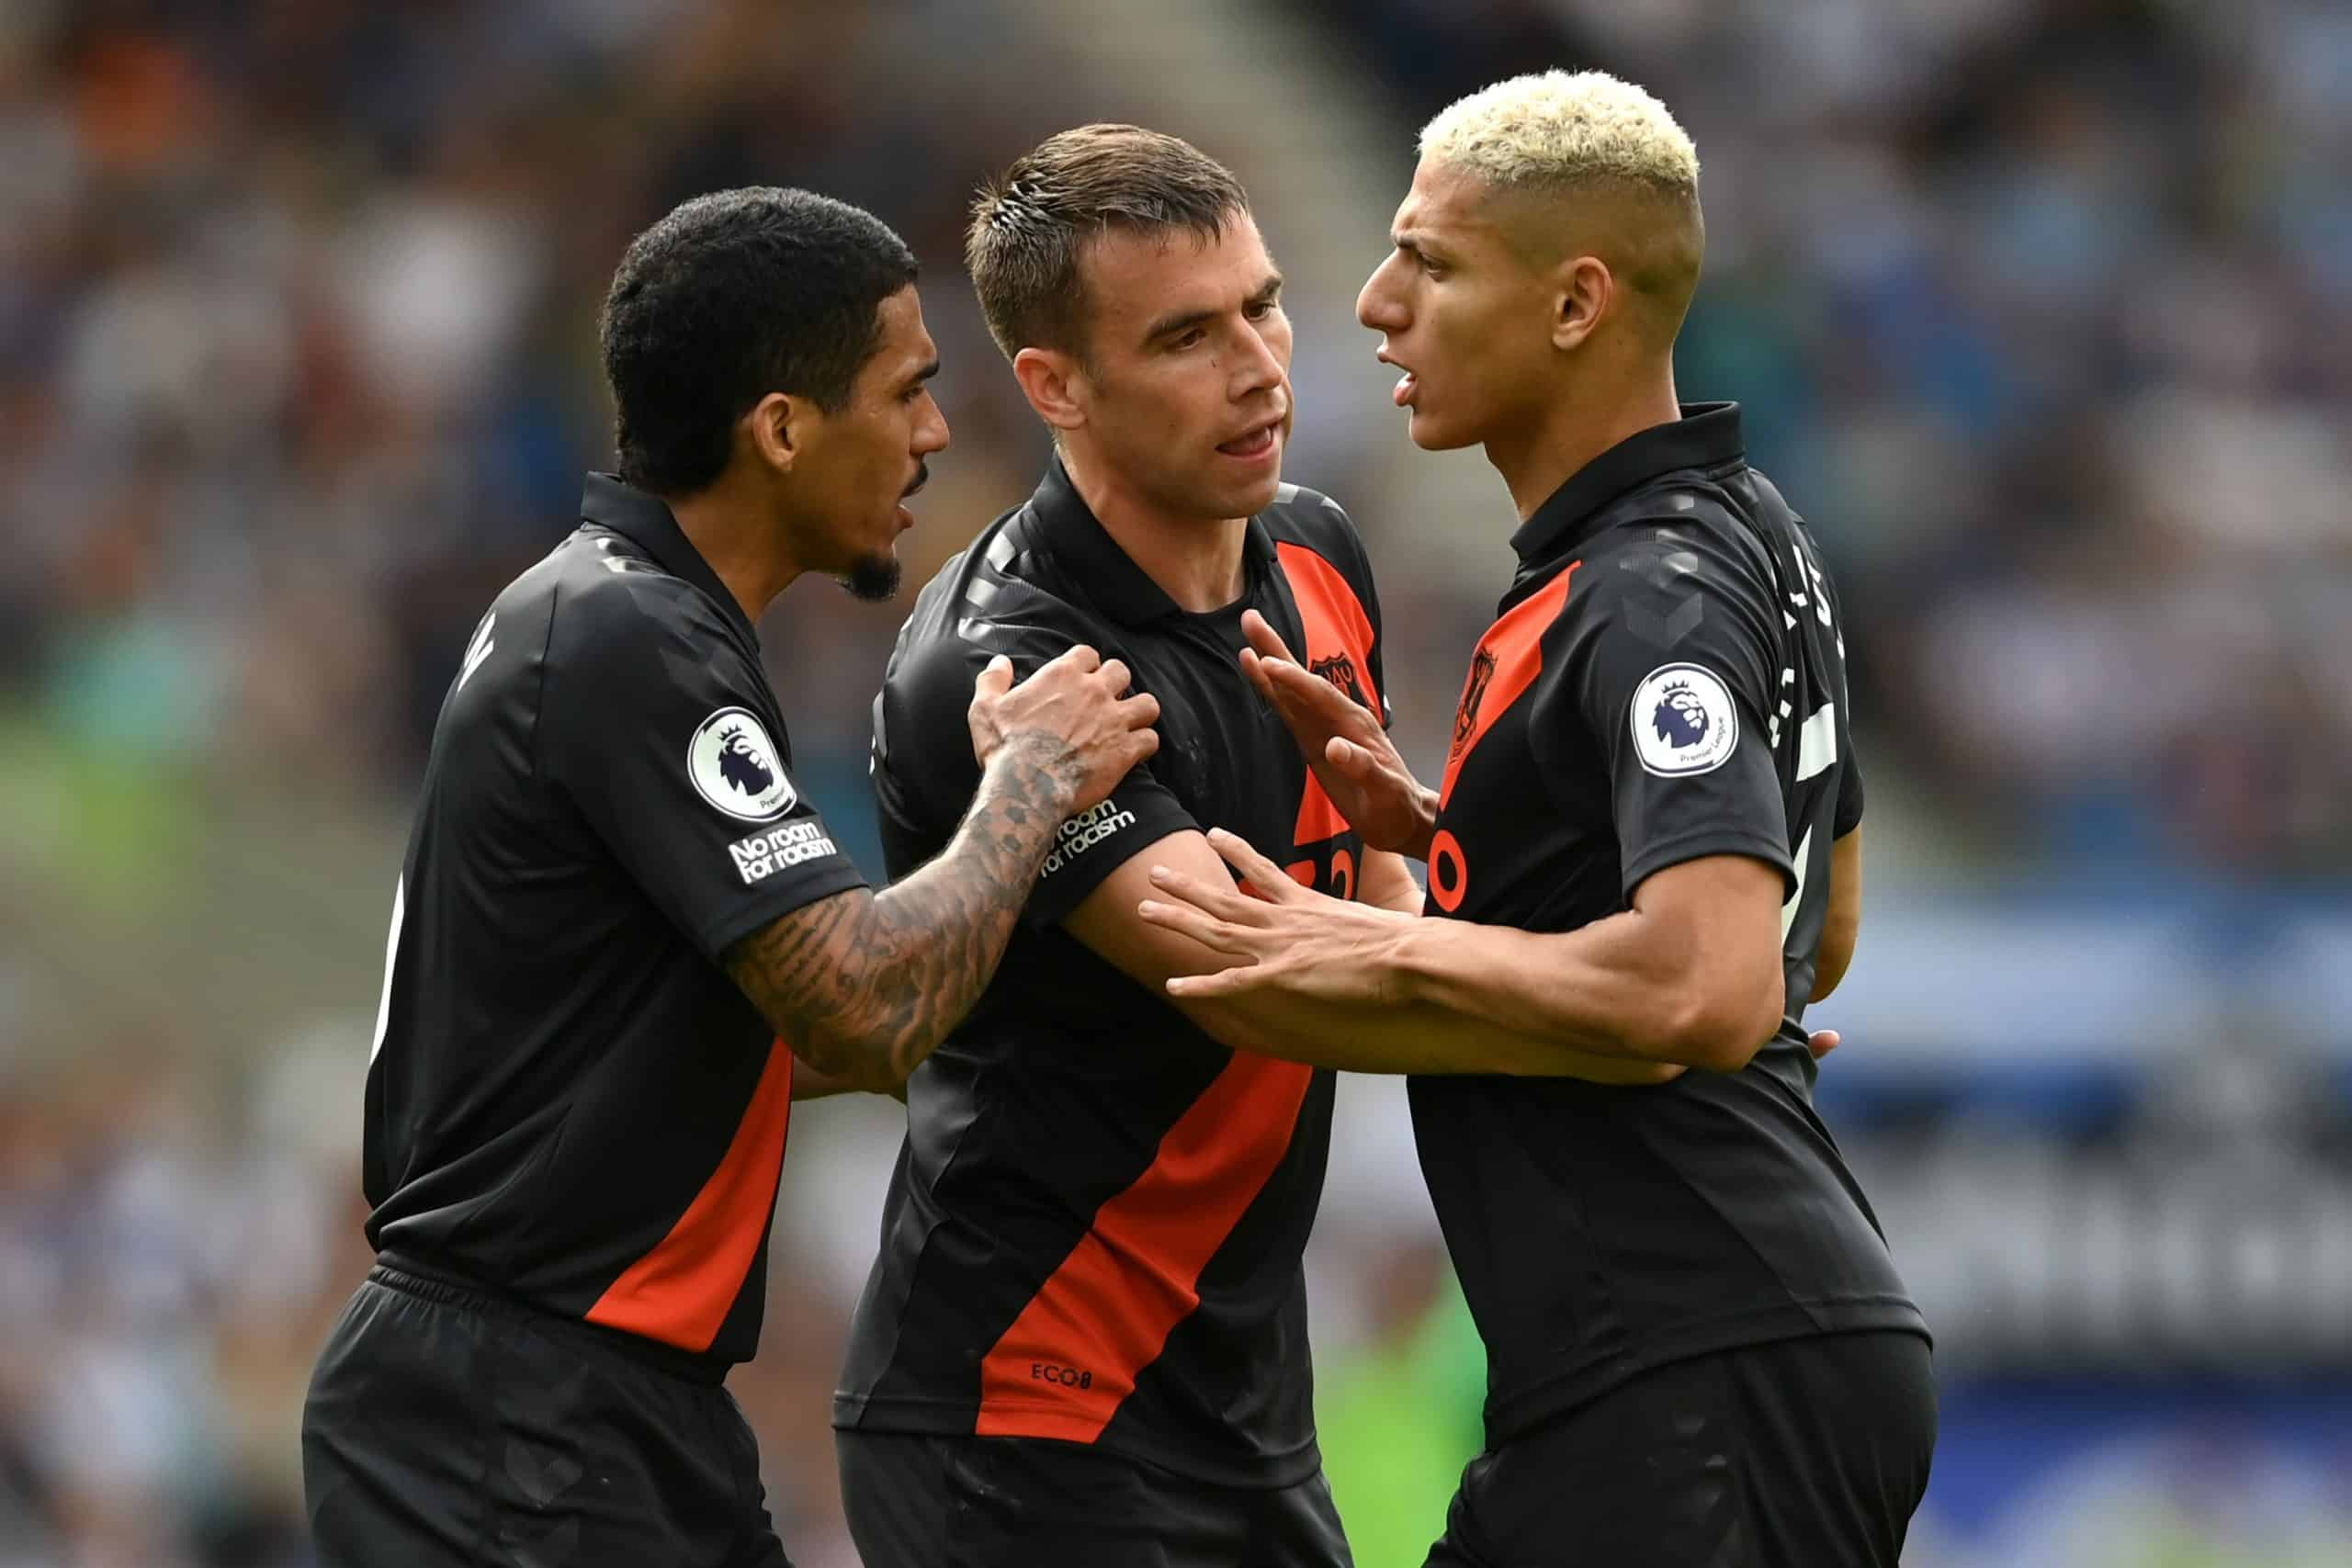 Everton vs Burnley betting tips: Preview, predictions & odds